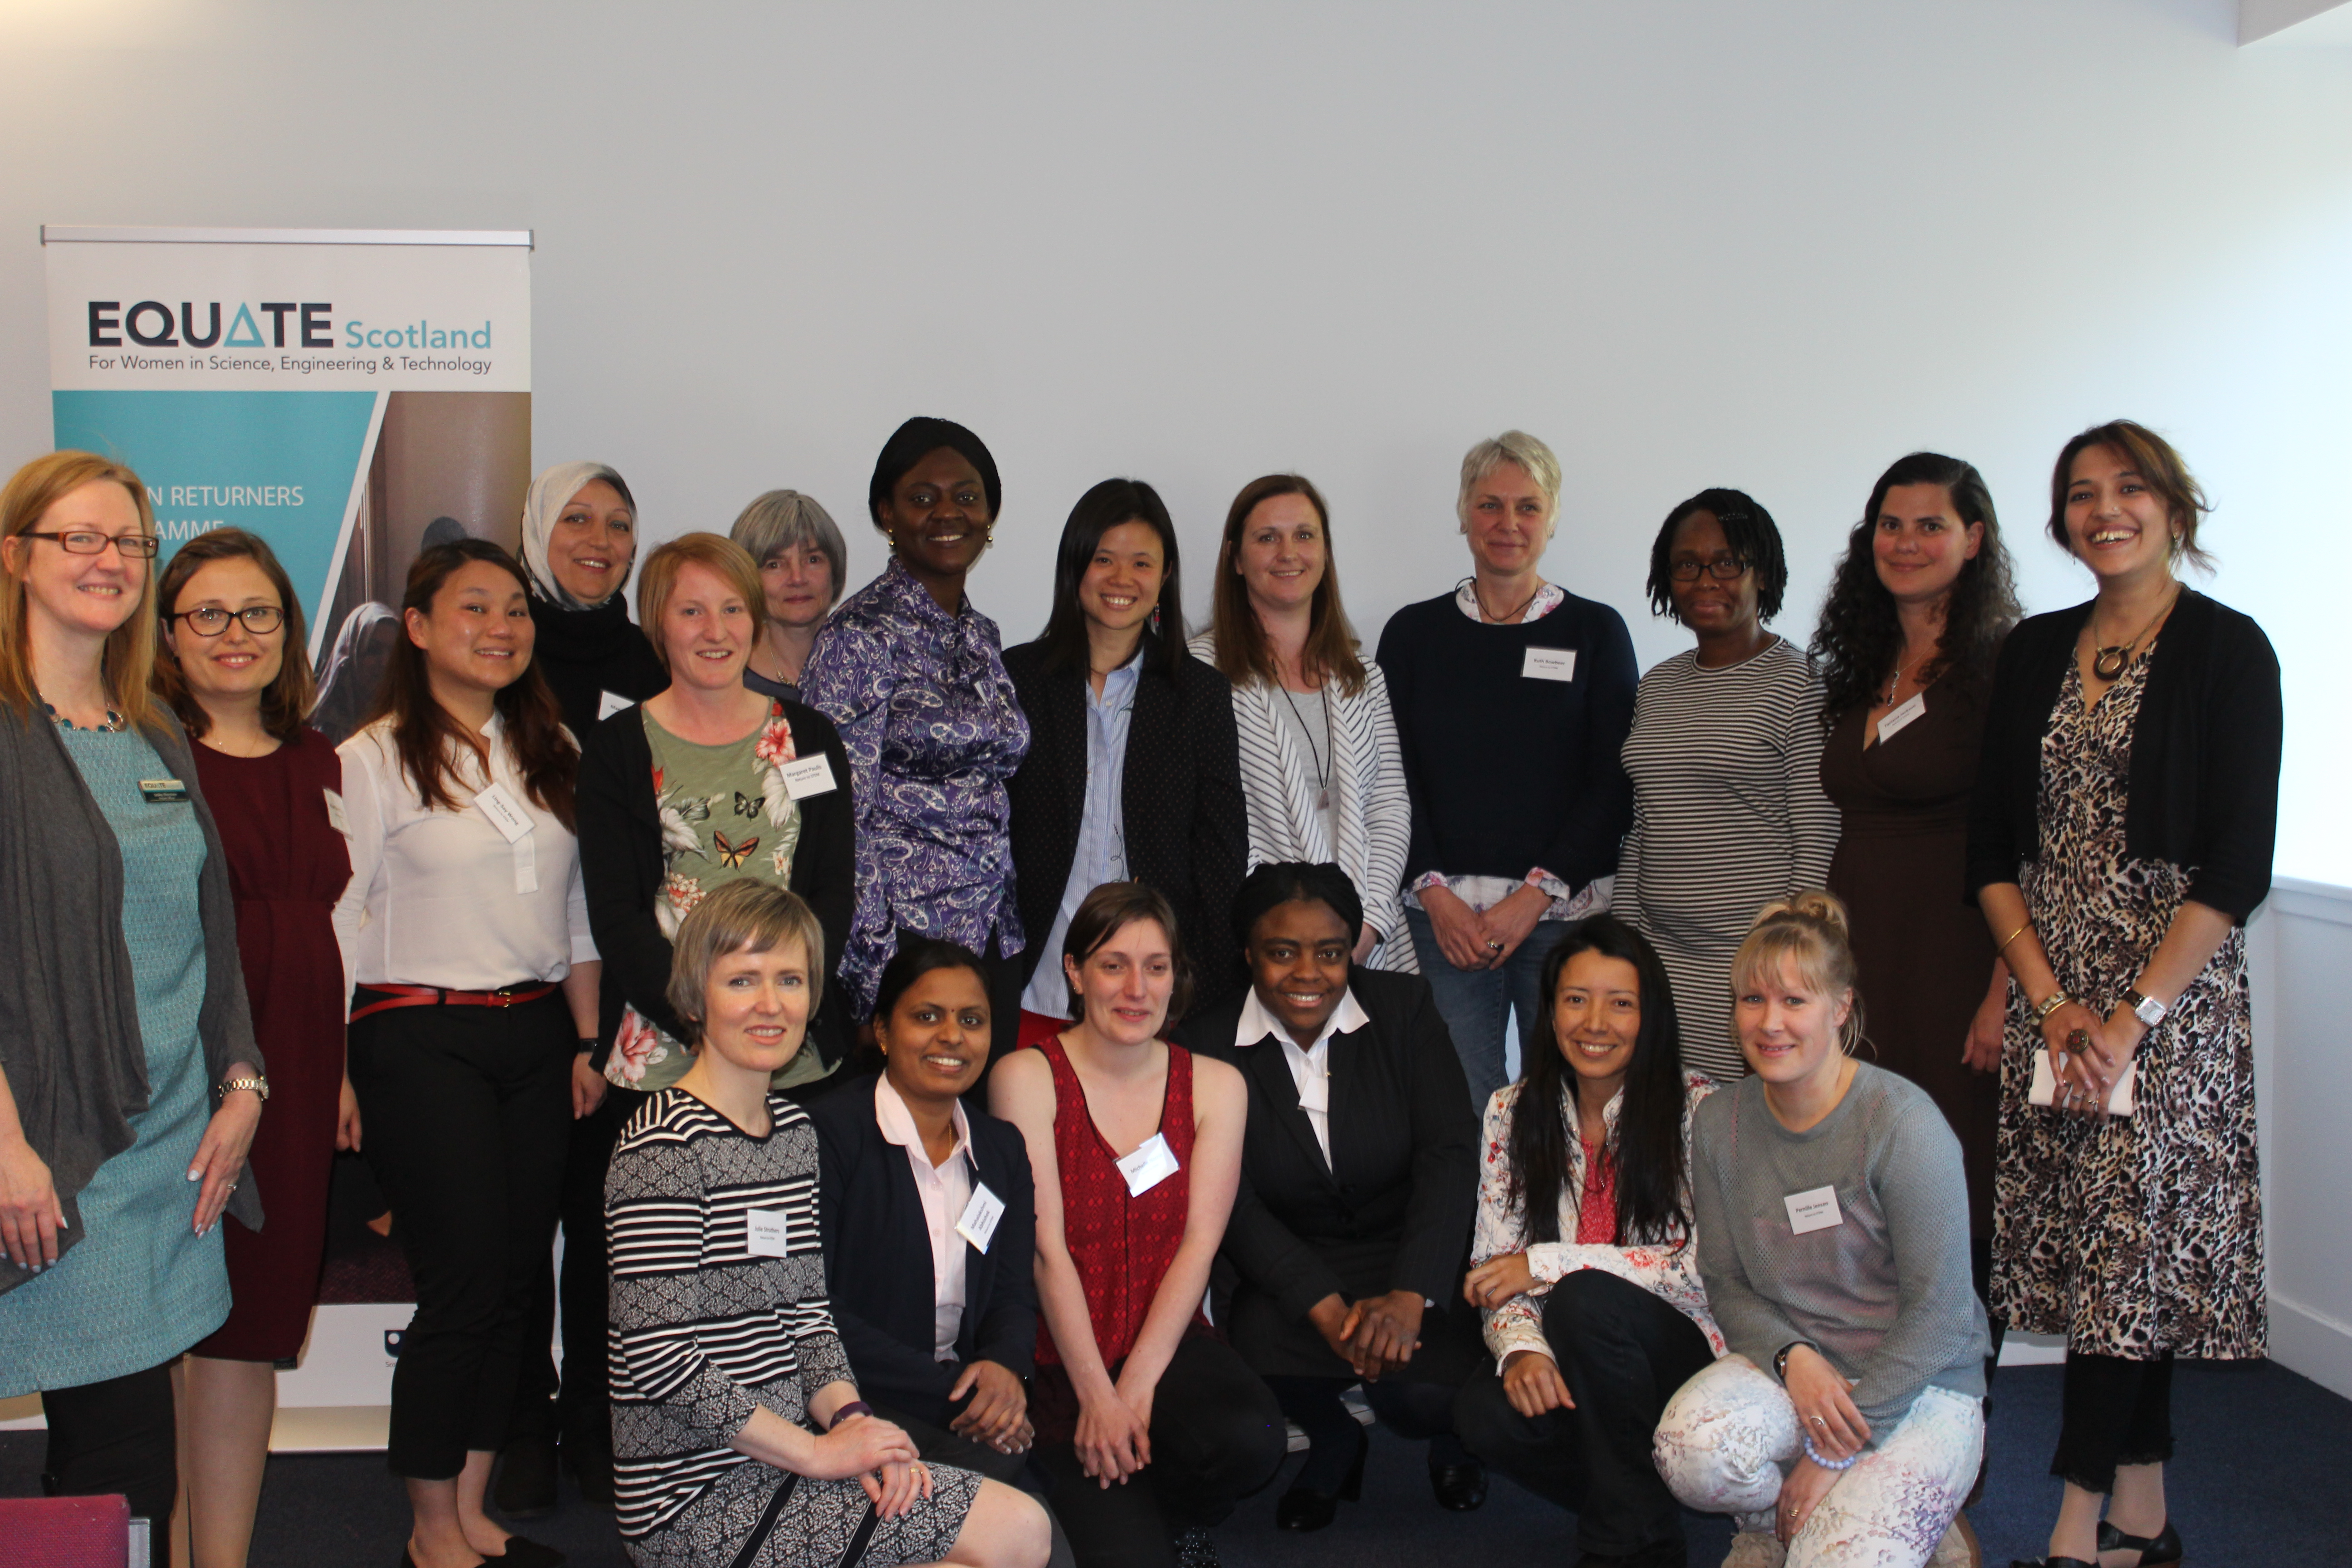 An interview with Lesley Macniven, Women Returners Programme Lead at Equate Scotland.